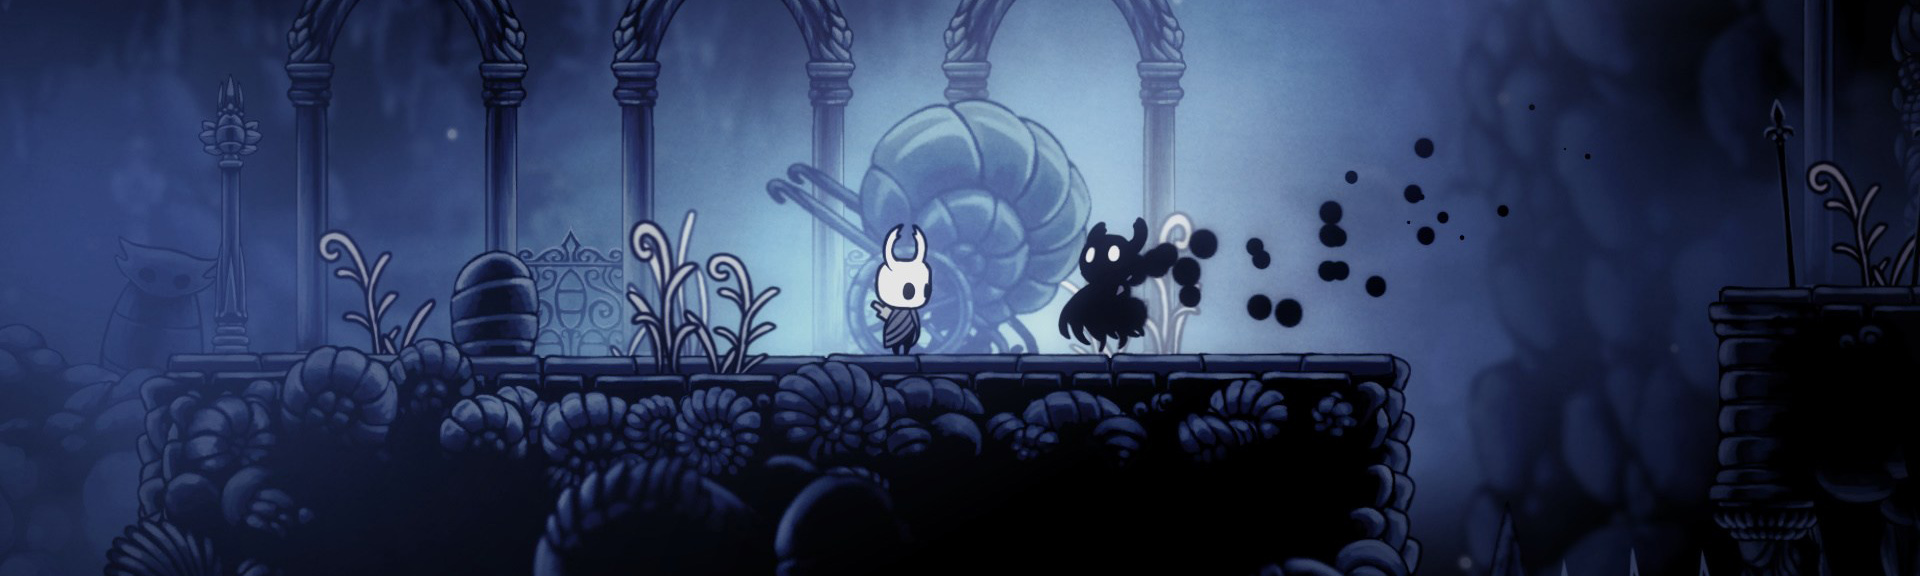 Hollow_knight15